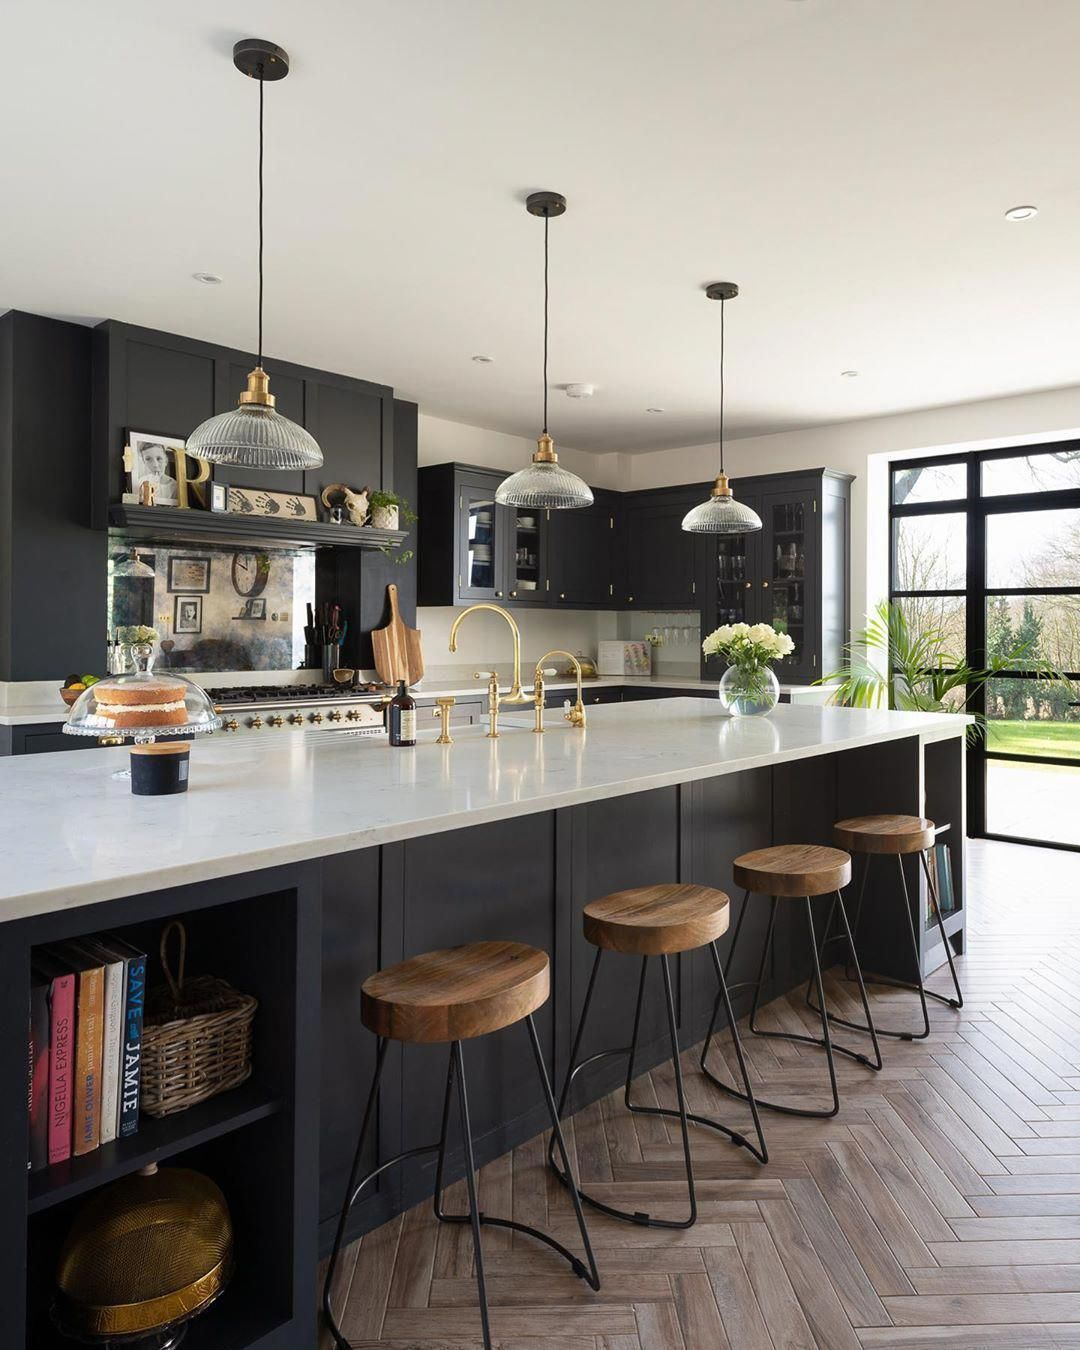 This Large Kitchen Island Can Accommodate Up To Four Bar Stools An Ideal Spot For Large Kitchen Island Open Plan Kitchen Dining Open Plan Kitchen Living Room